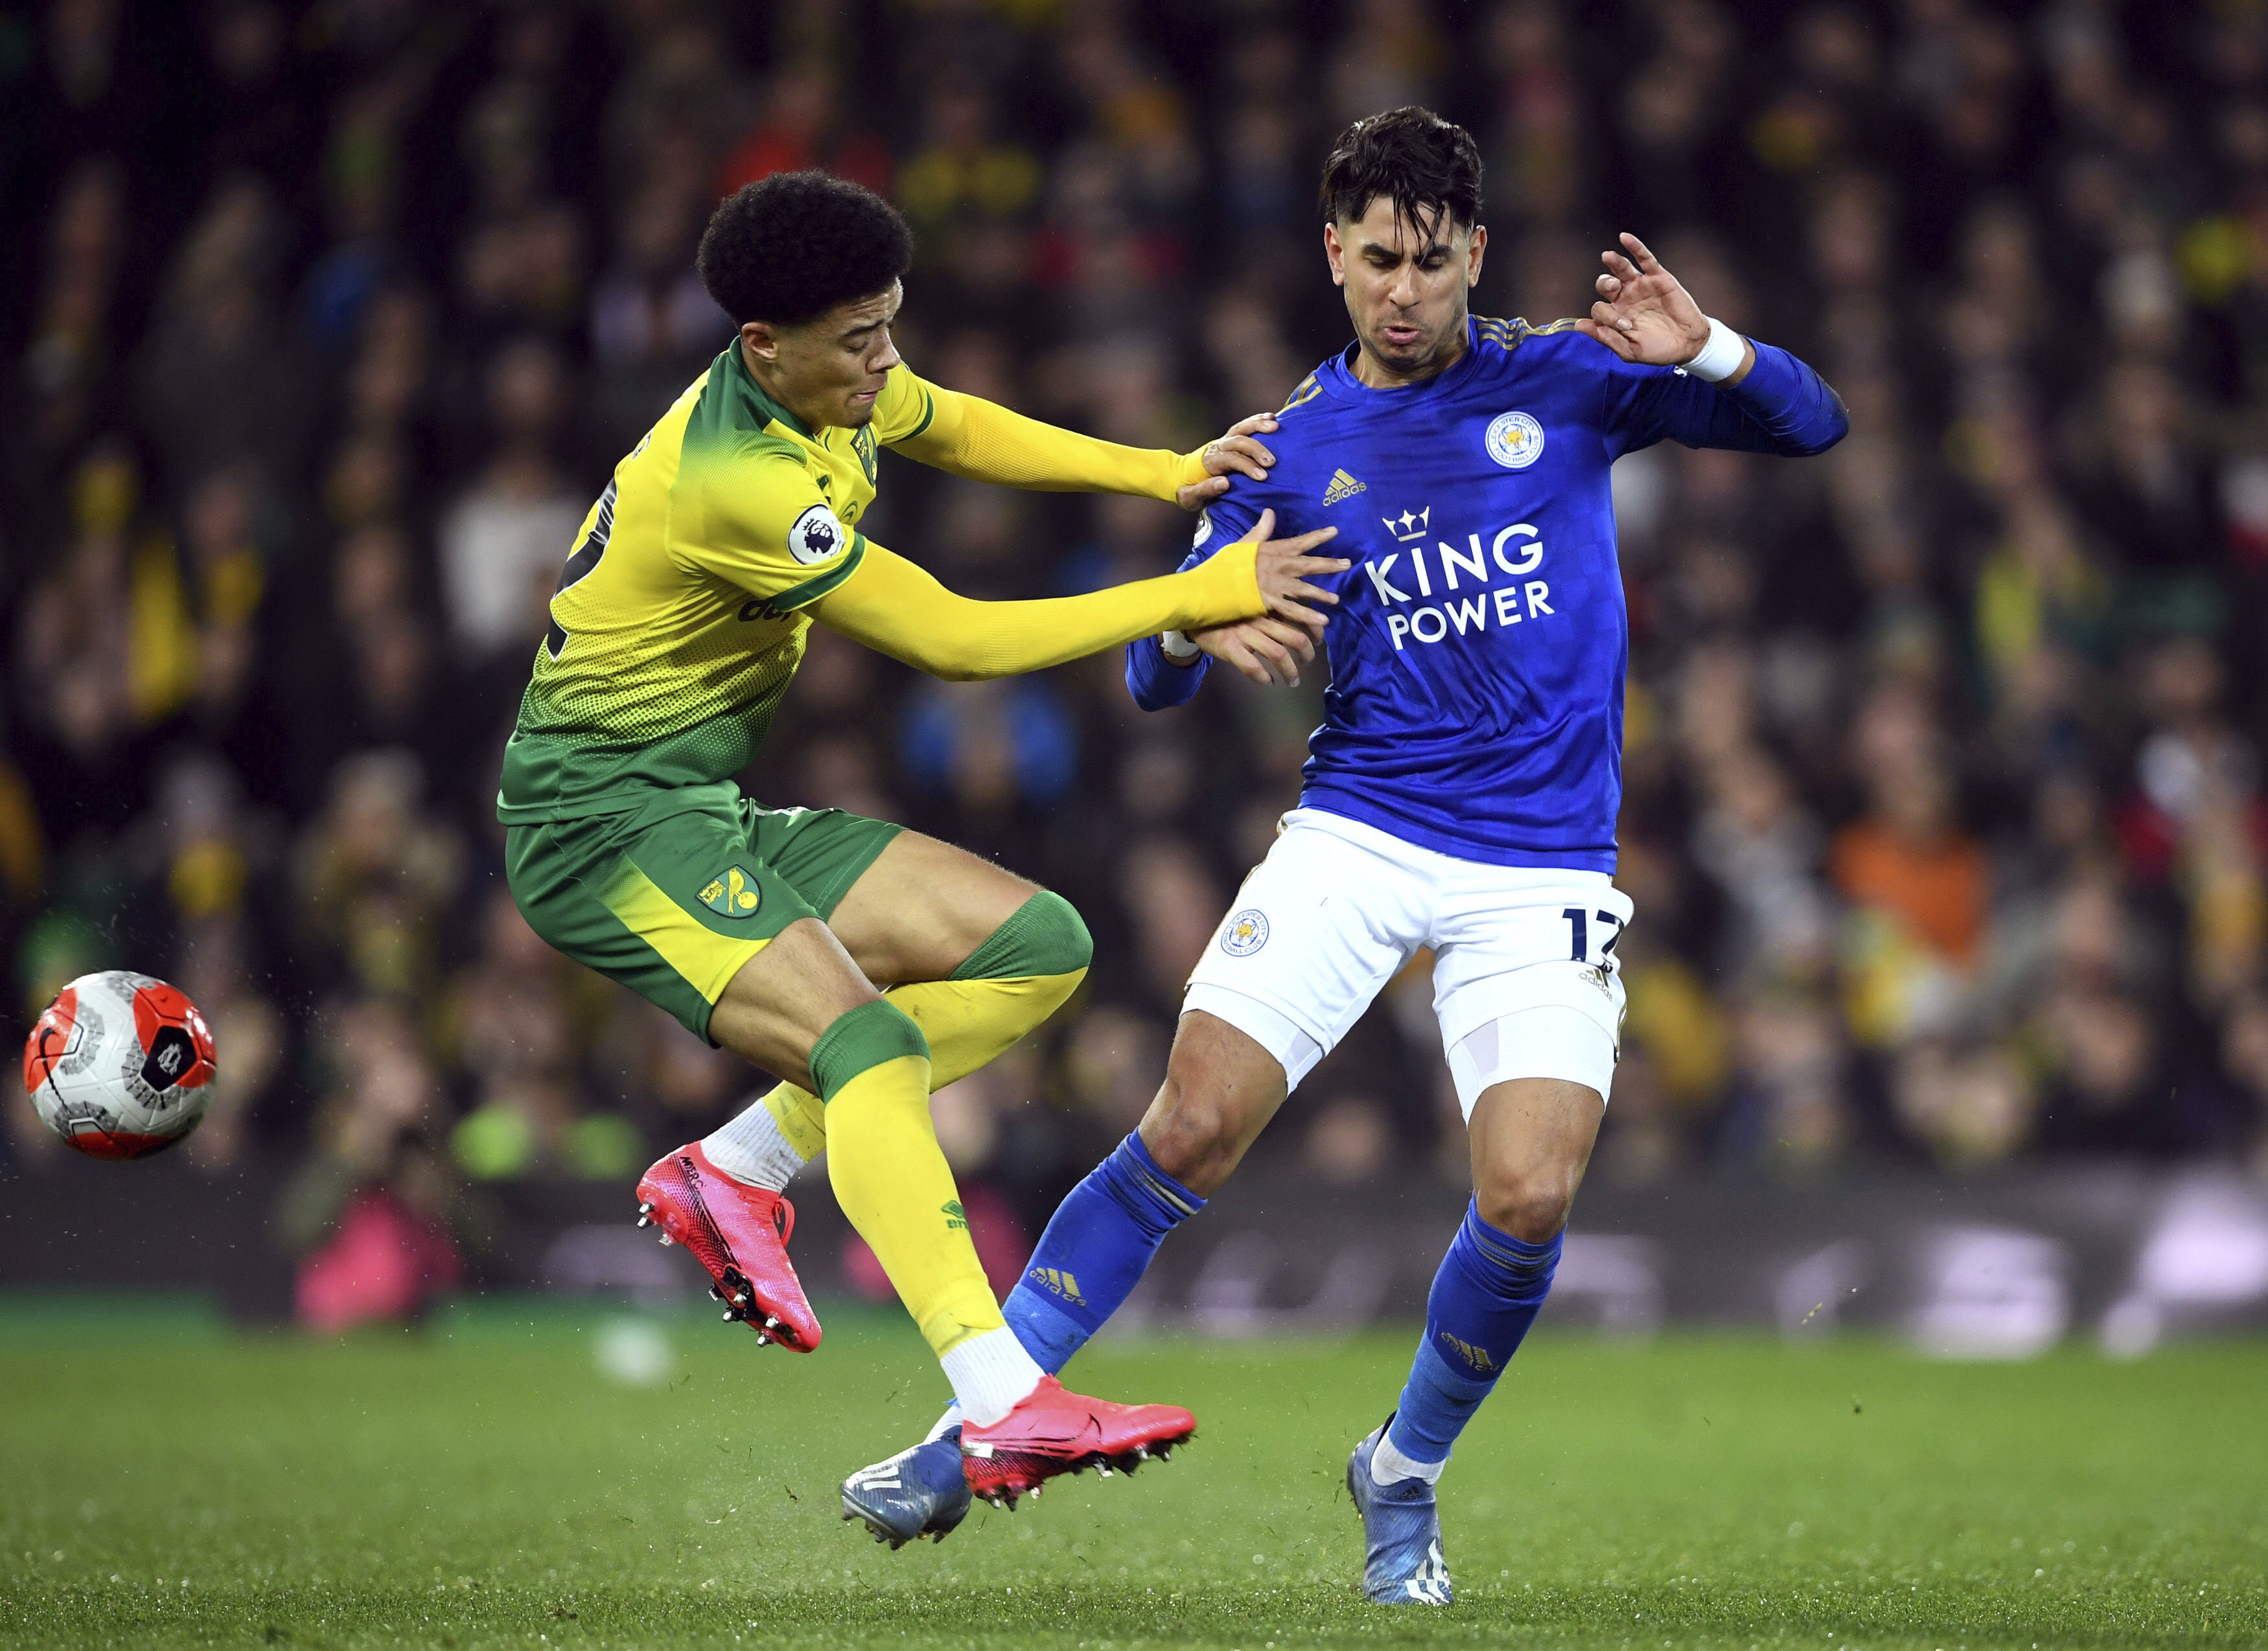 Norwich beats Leicester 1-0, boosts survival hopes in EPL